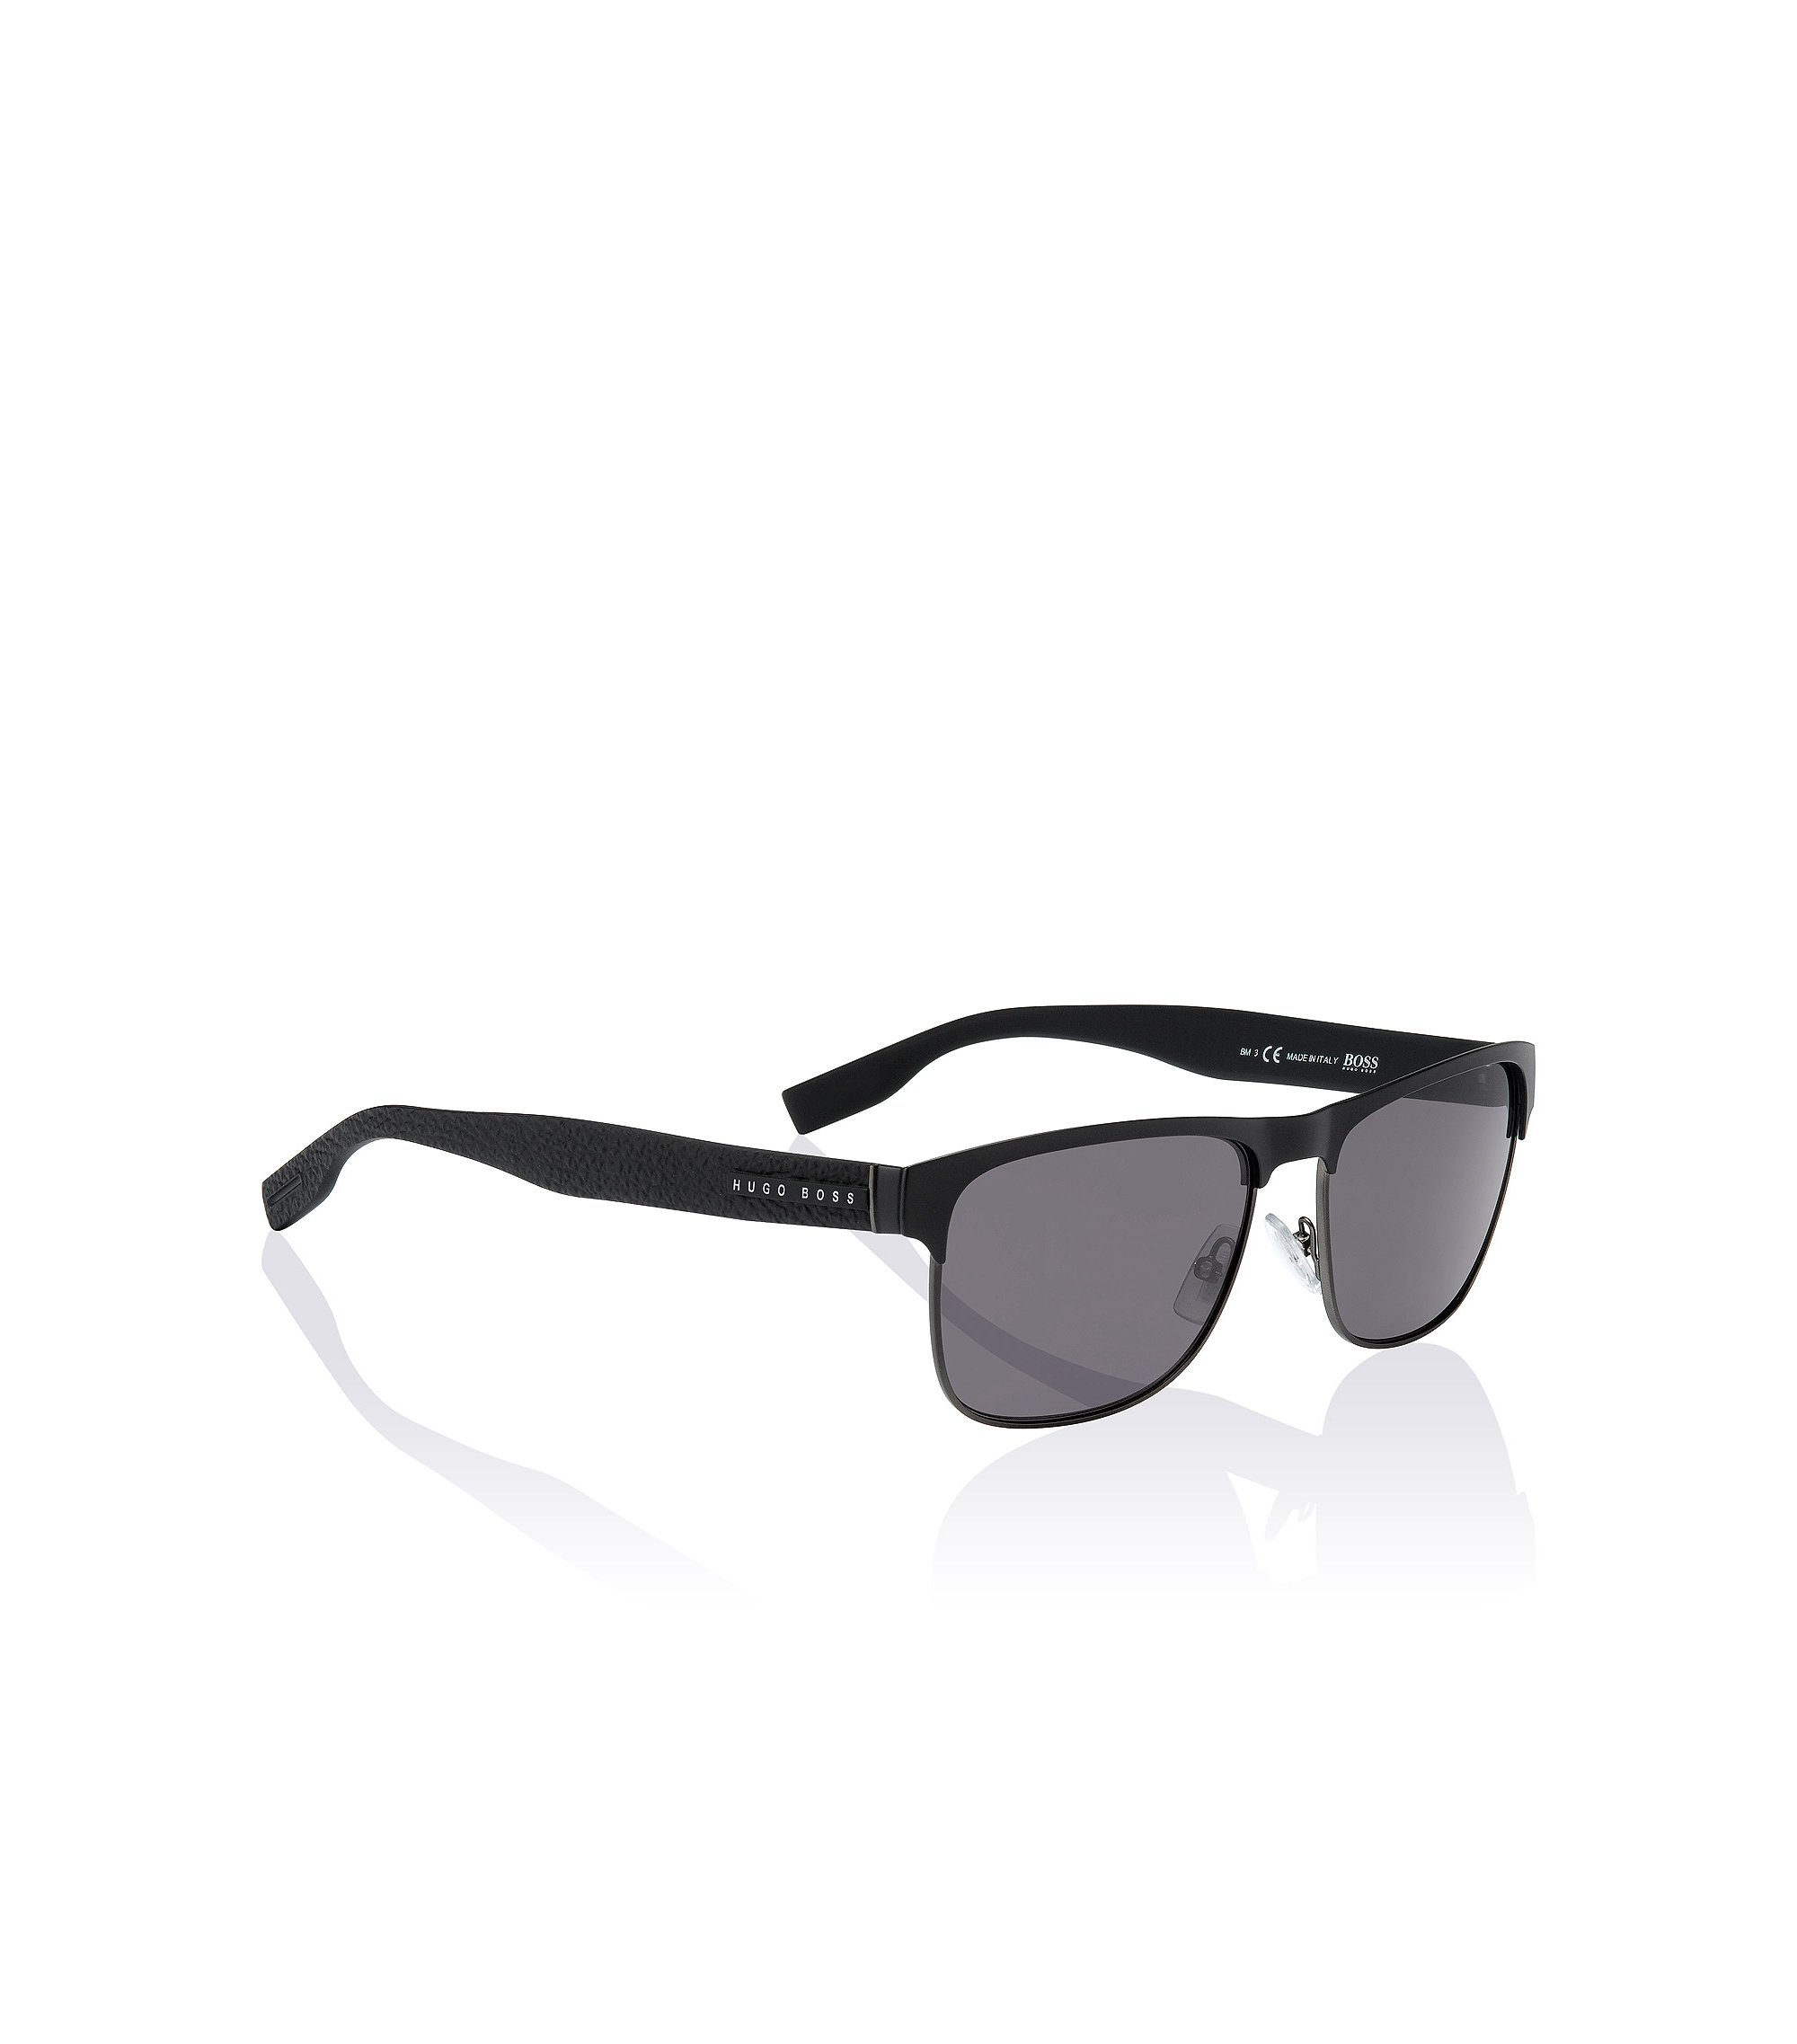 Sonnenbrille ´BOSS 0559/S`, Assorted-Pre-Pack